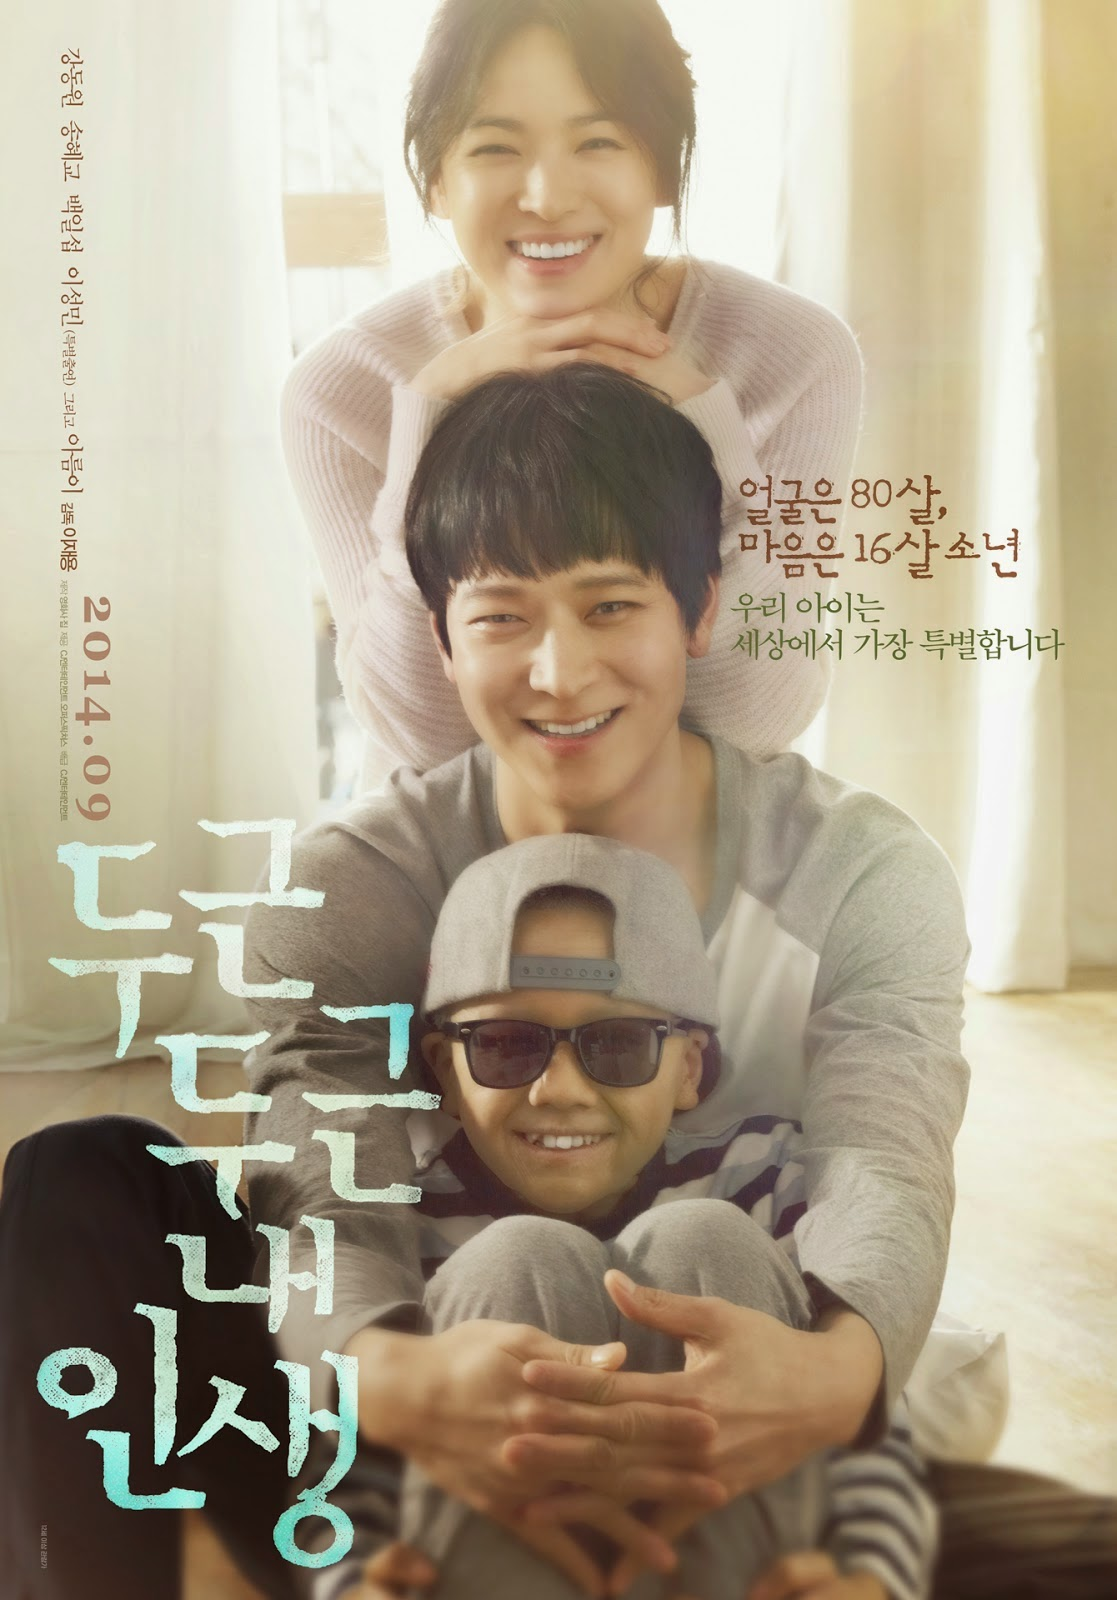 best korean movie My Palpitating Life, Kang Wong Won, drama withdrawal syndrome